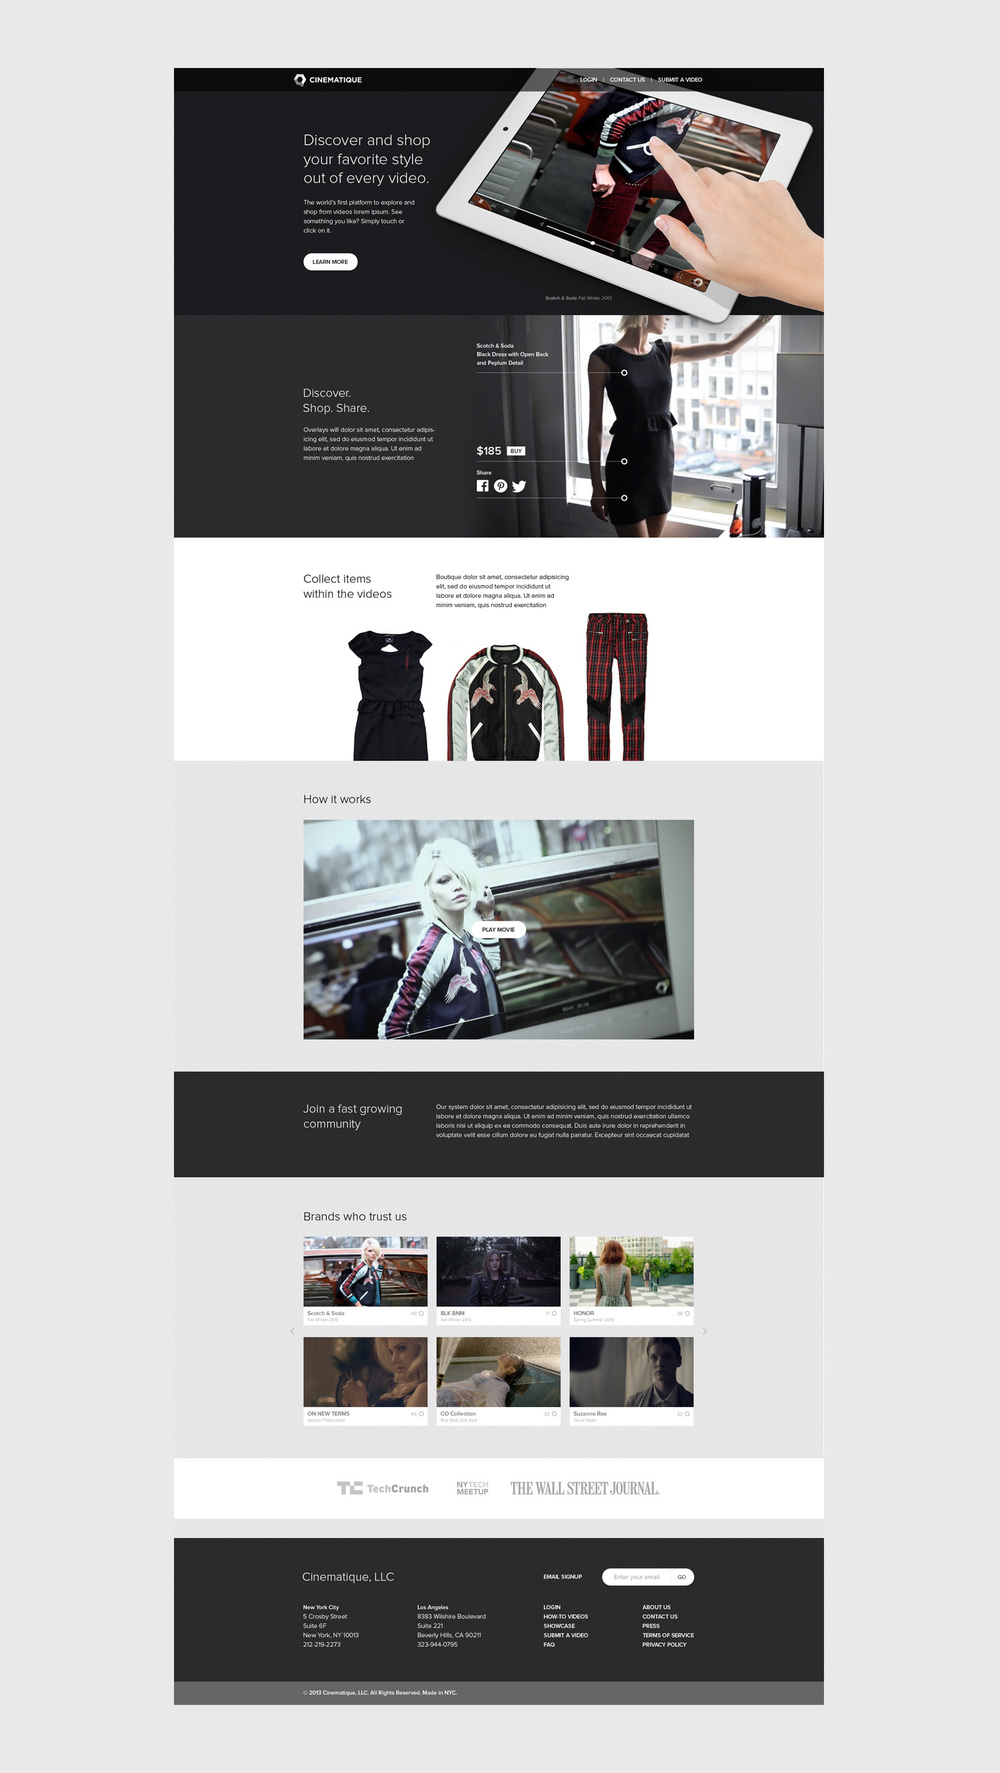 140108-Thomas-Mutscheller-Portfolio-Web-Design-Cinematique-02.jpg